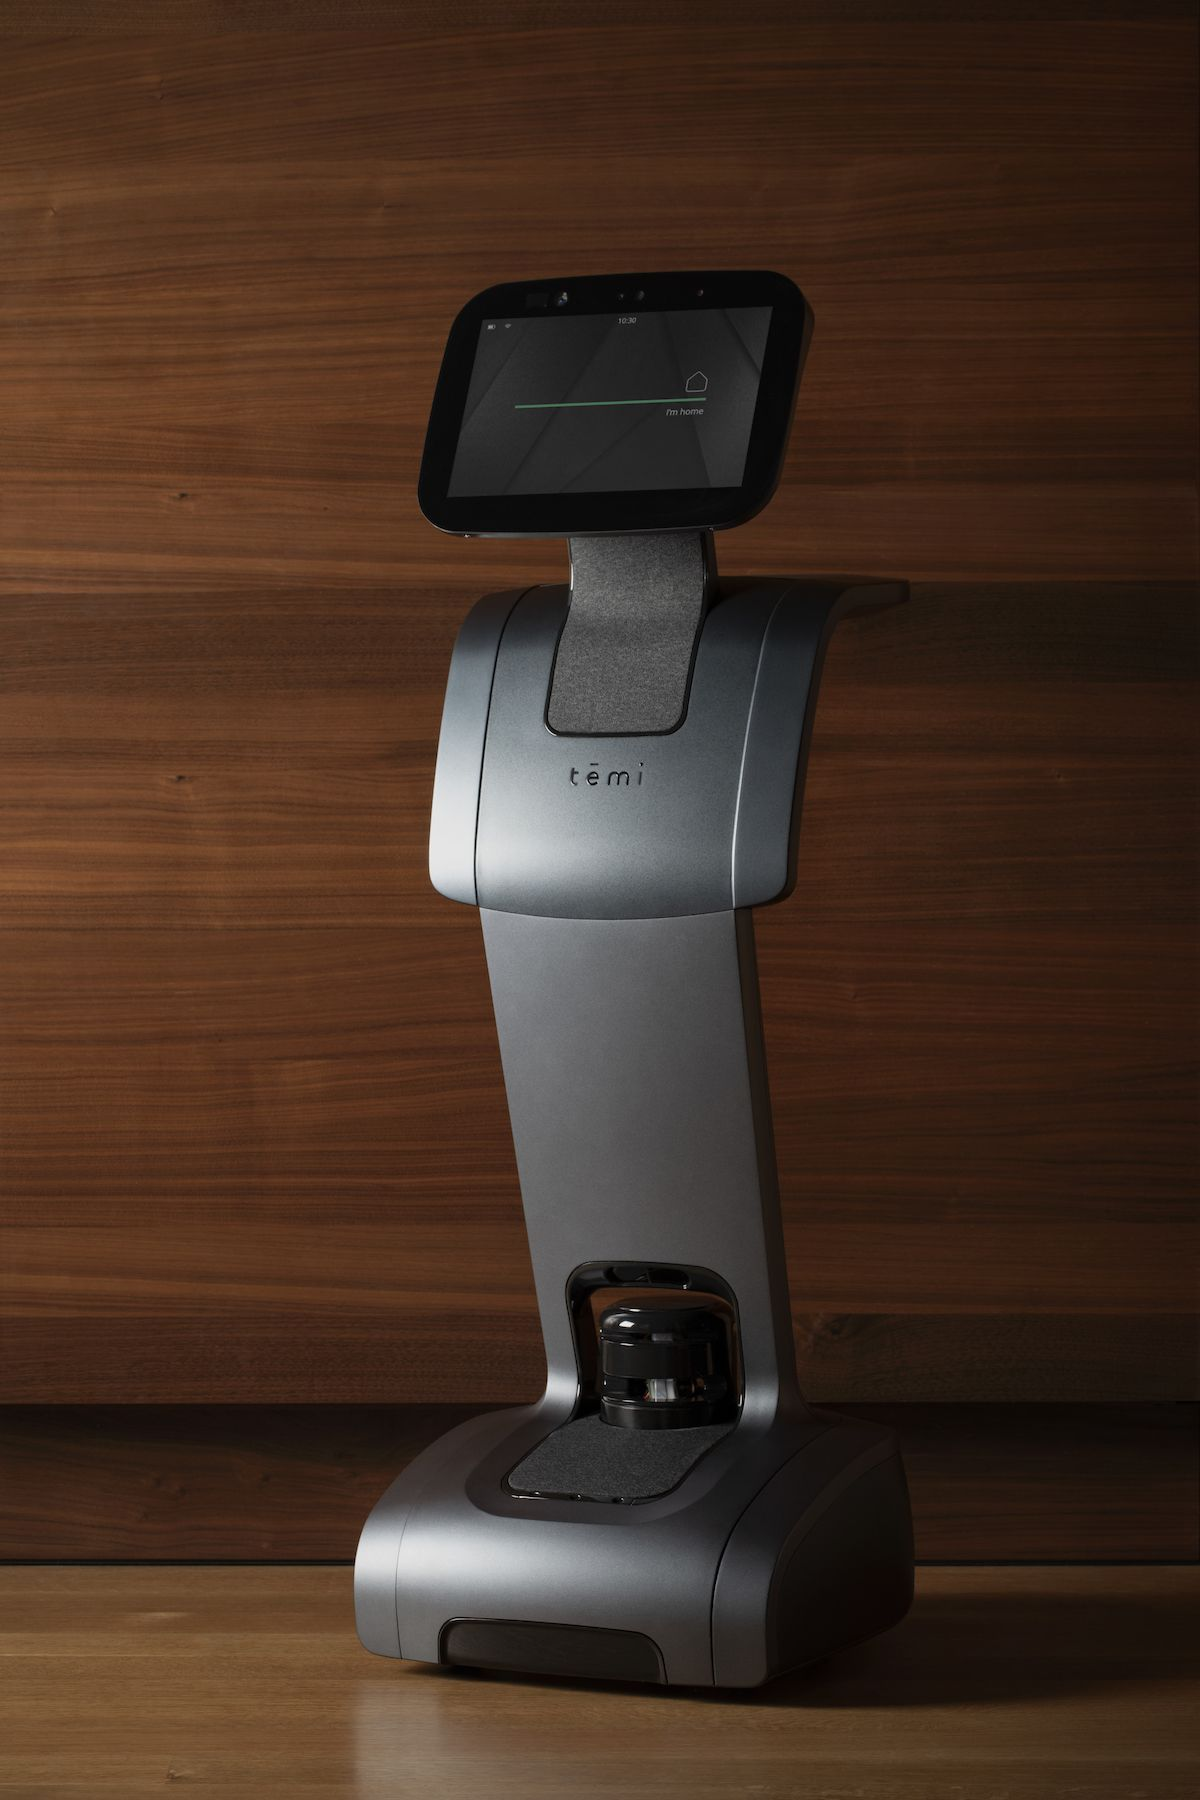 The Obsbot in black and red - Immagine da www.theverge.com